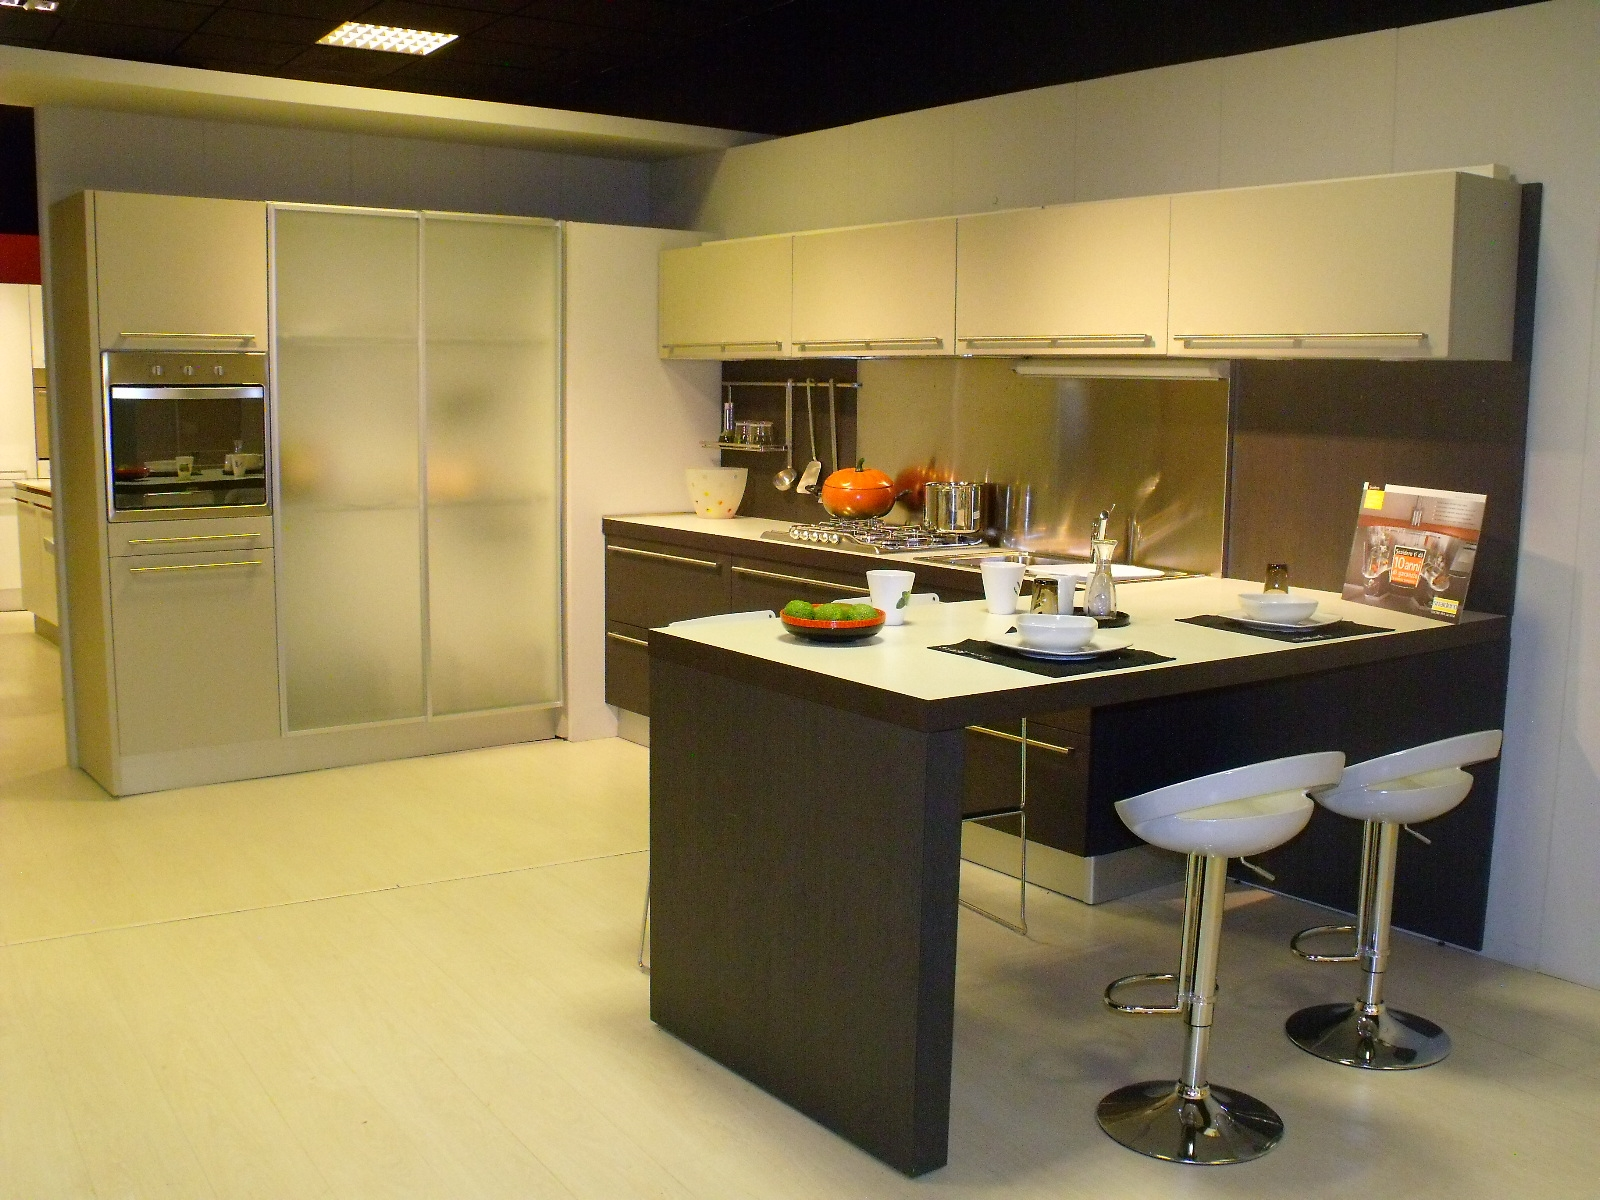 Tendenze geopietra for Cucine moderne 3x3